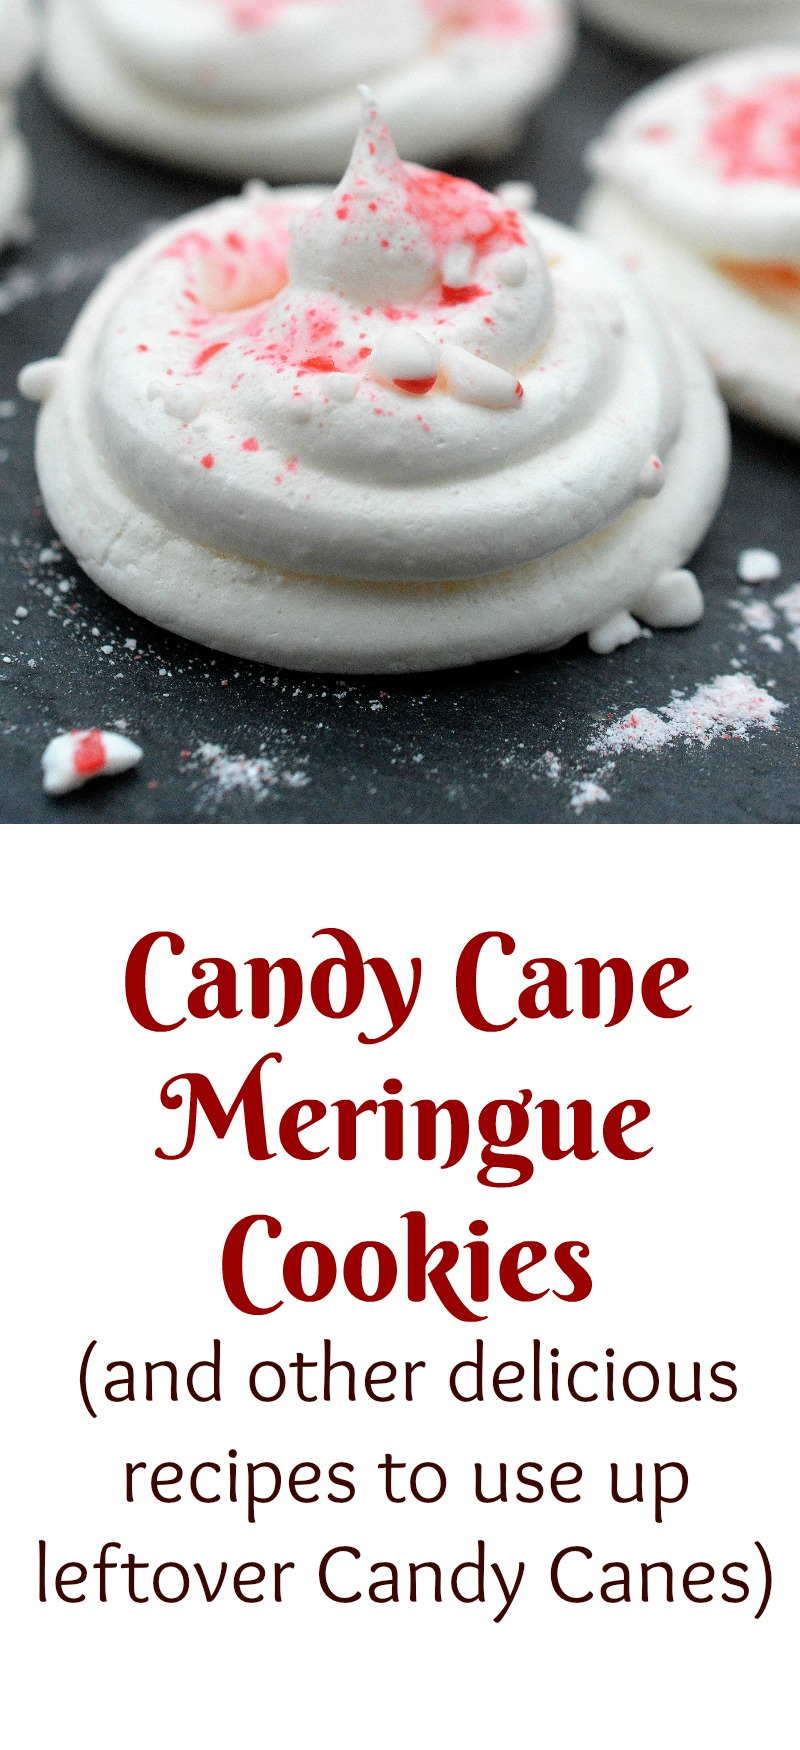 Candy Cane Meringue Cookies and other recipes for using up leftover candy canes